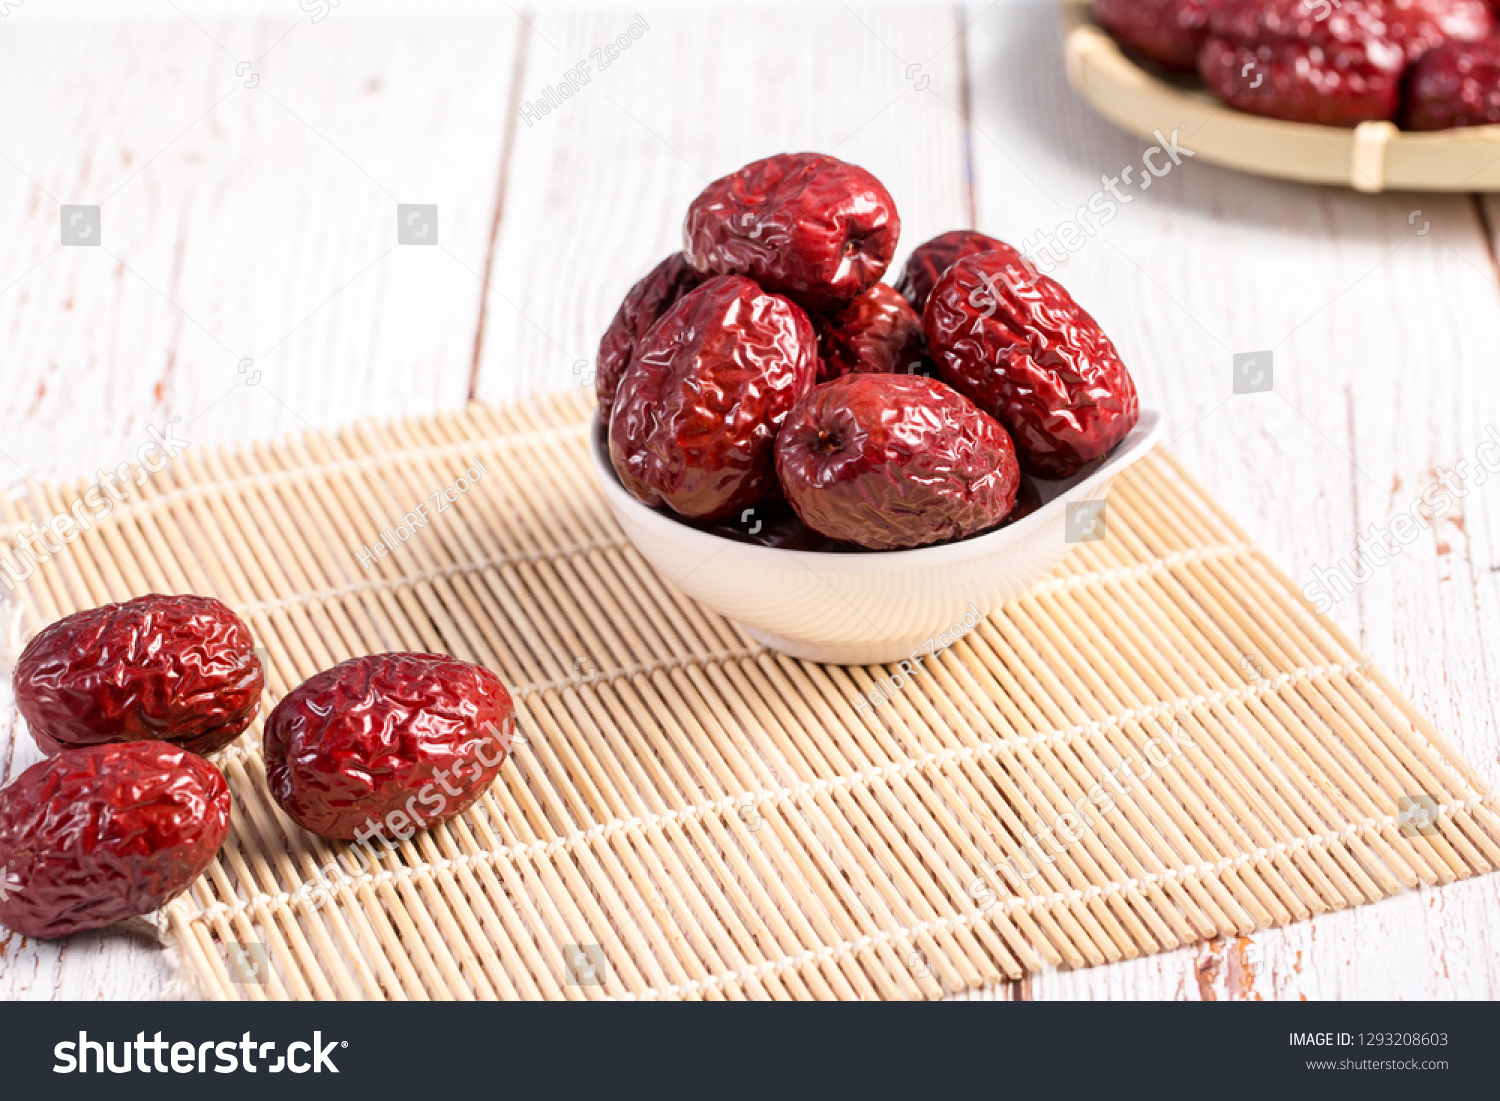 Dried dates, dried dates, dried fruit food #1293208603